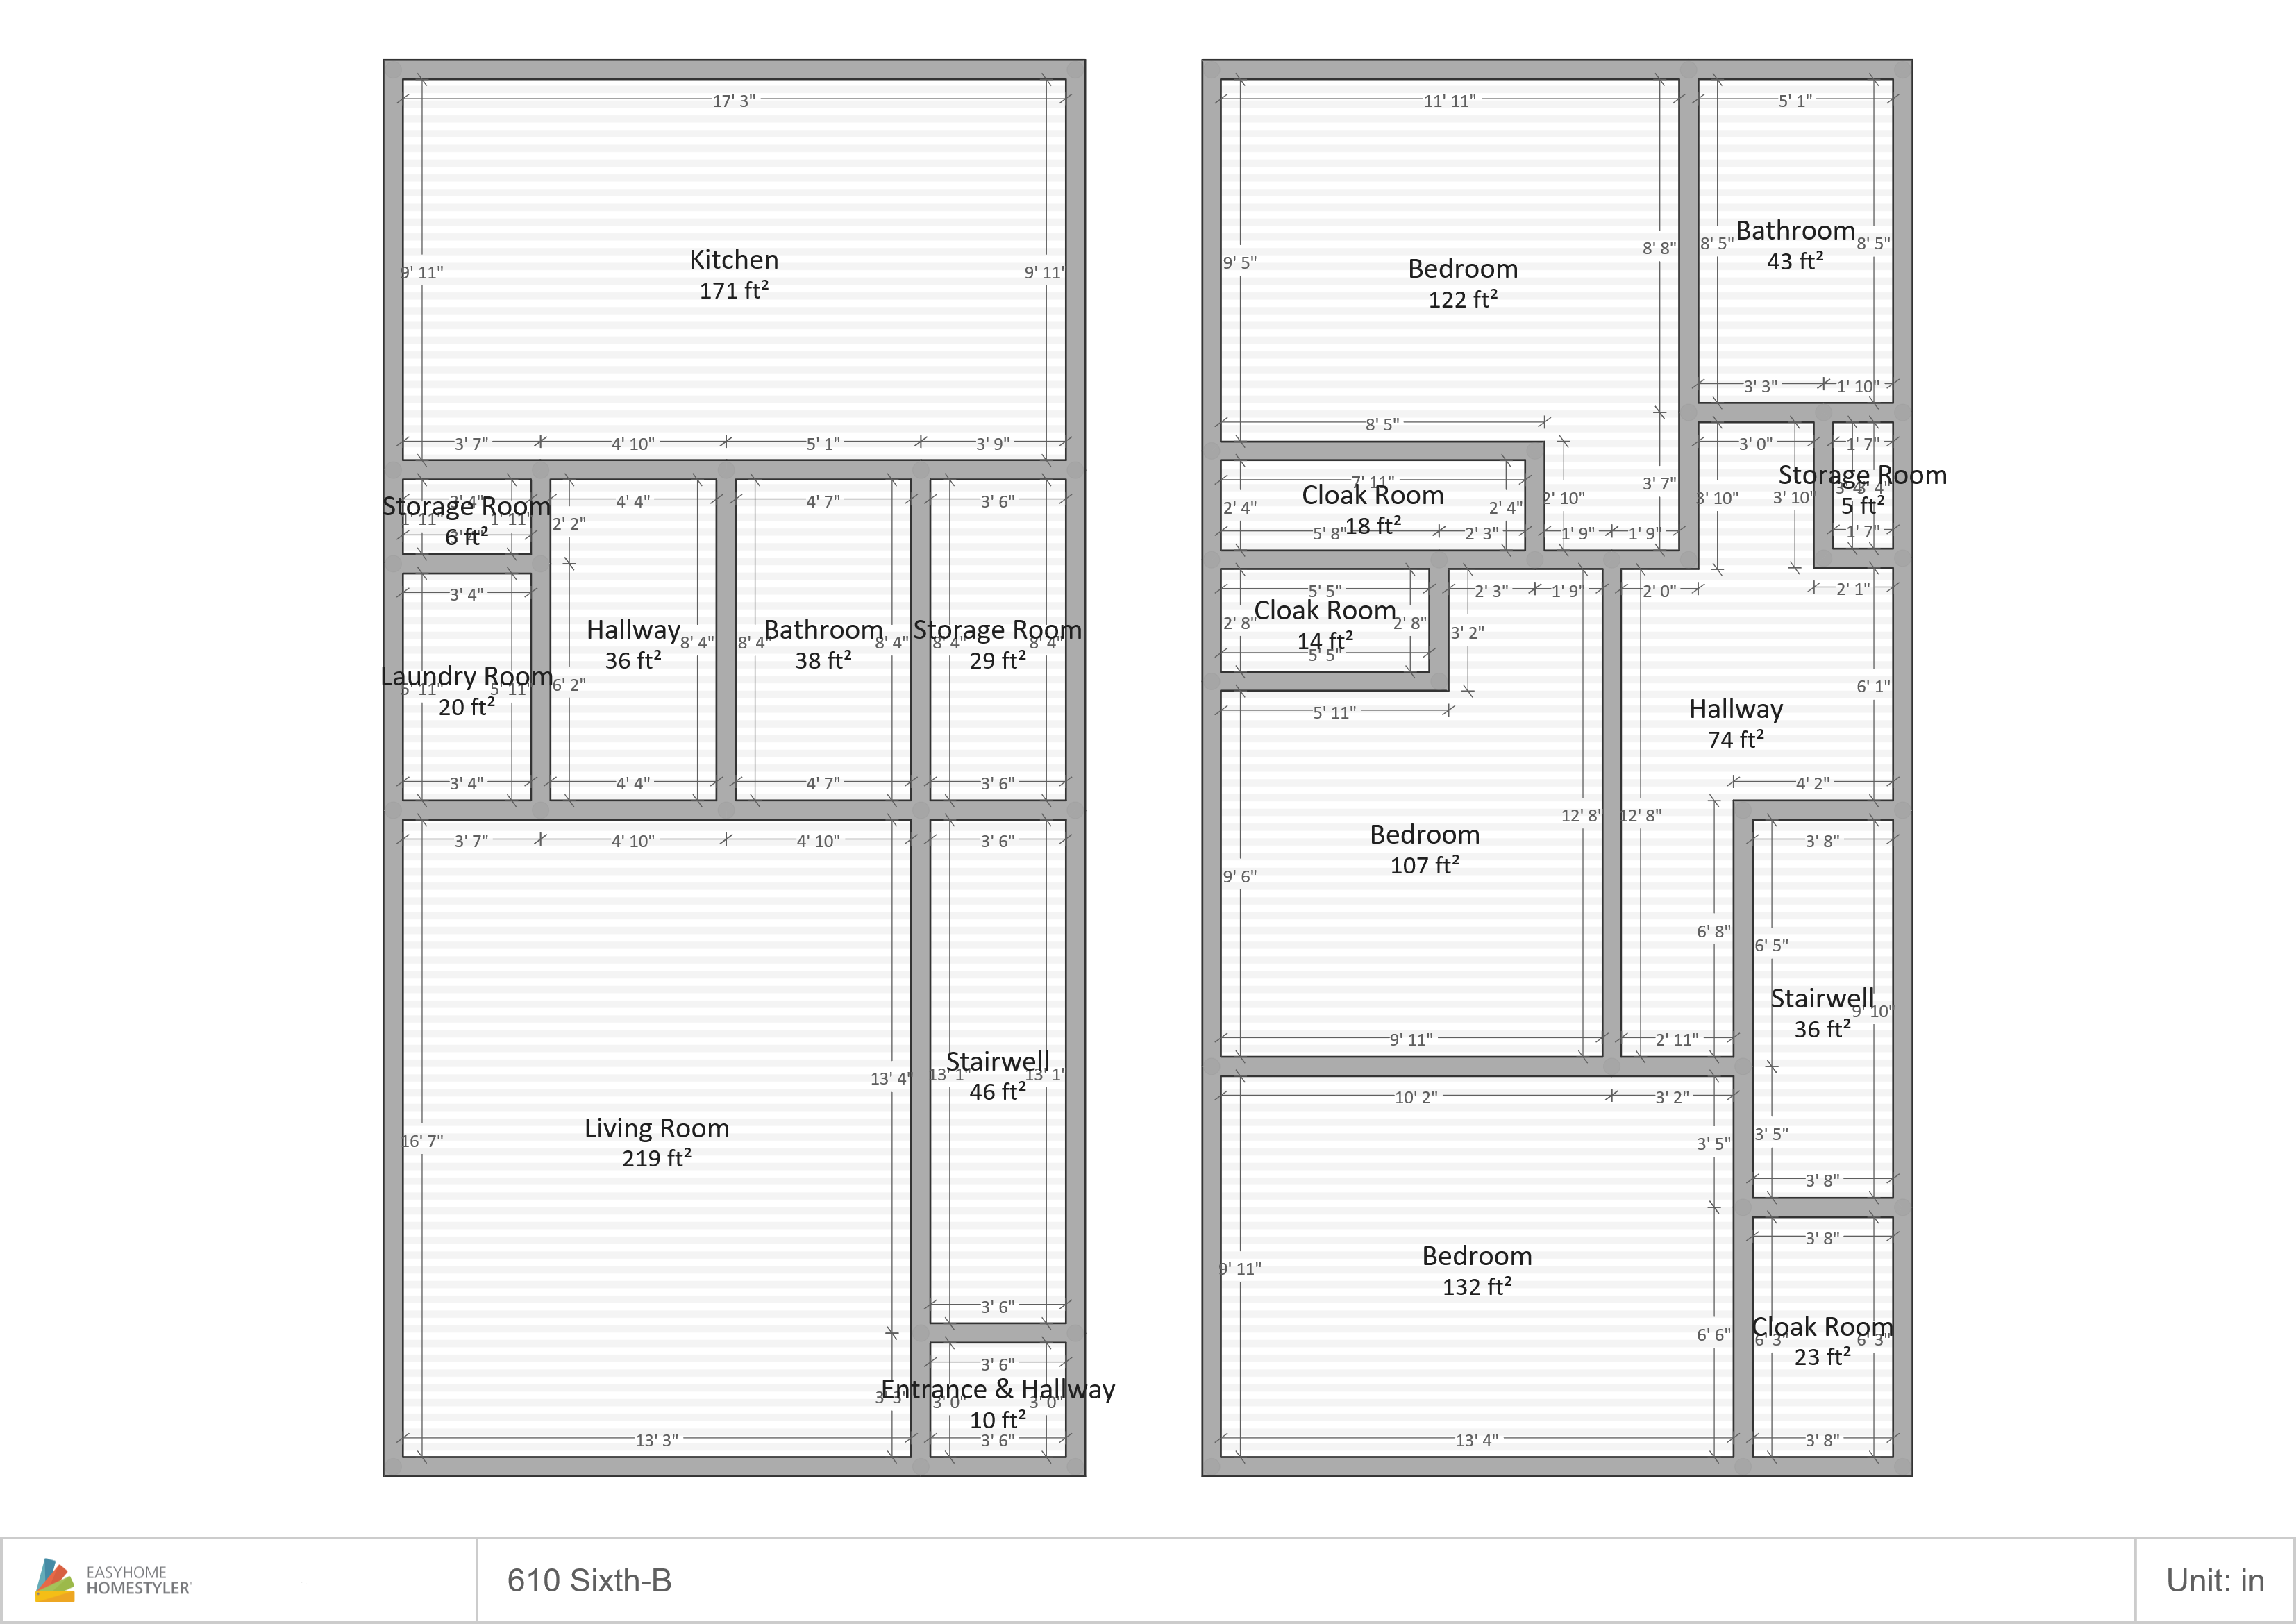 610 S Sixth B Floor Plan